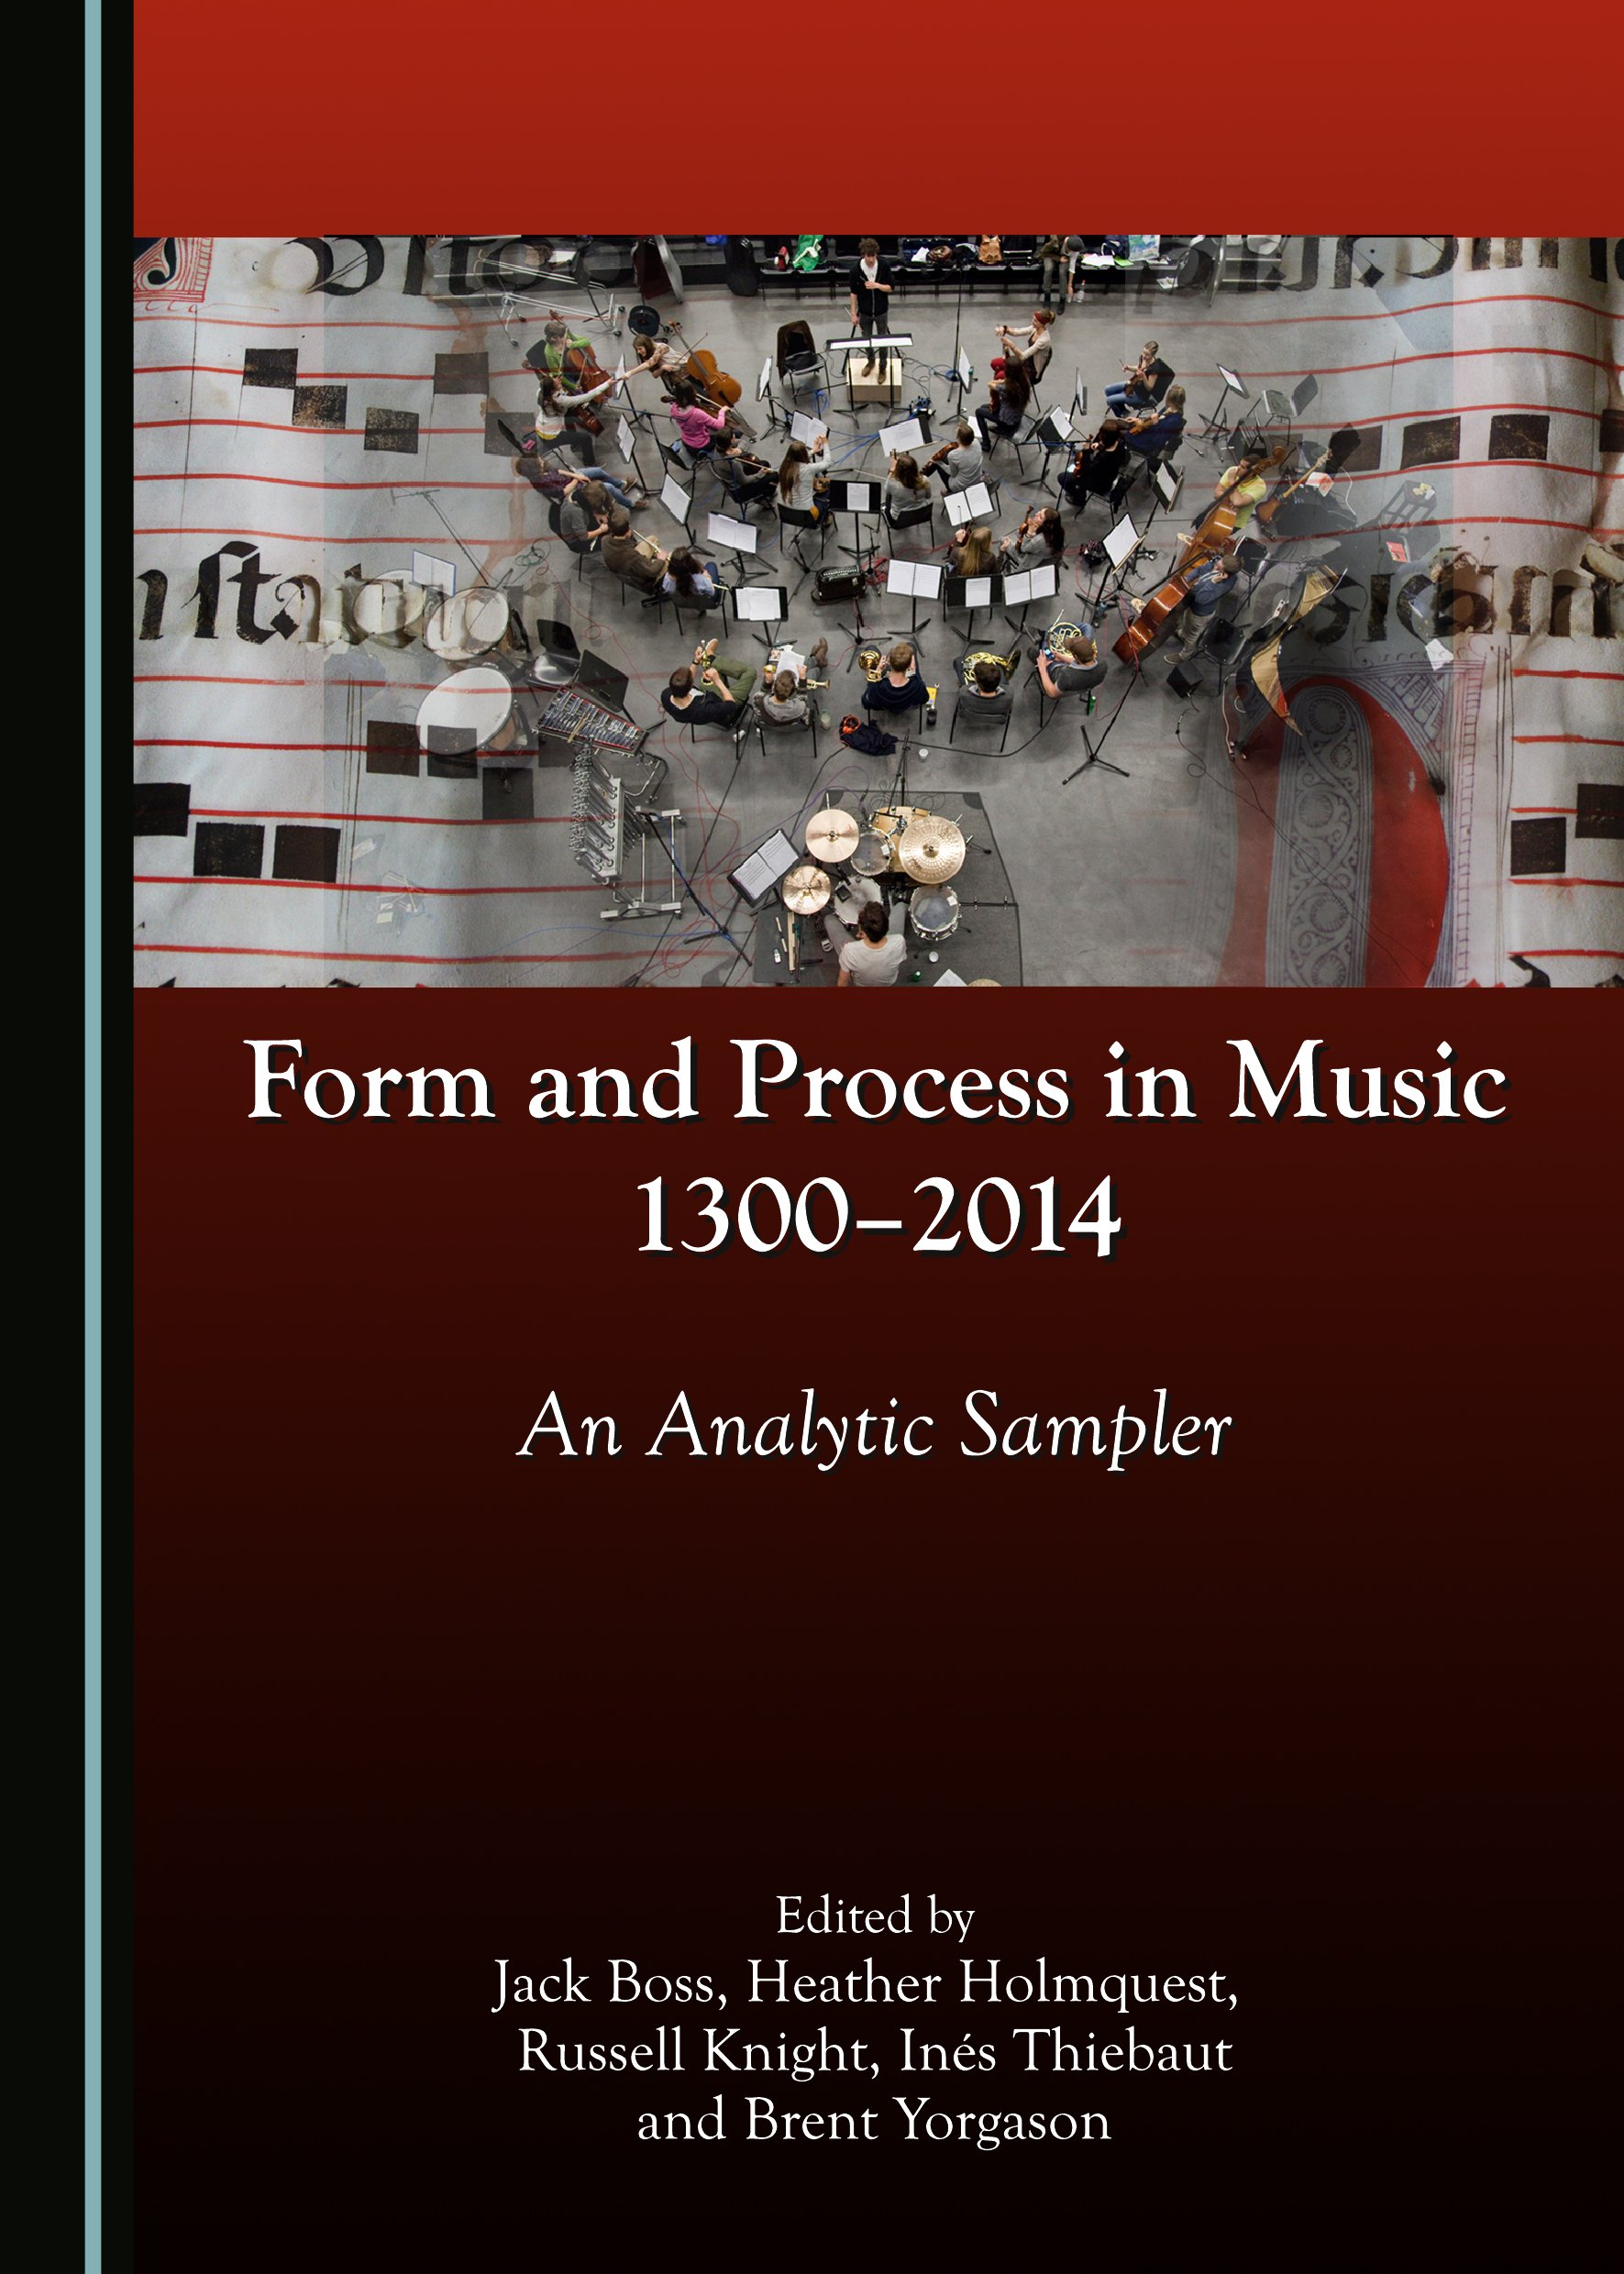 Form and Process in Music, 1300-2014: An Analytic Sampler